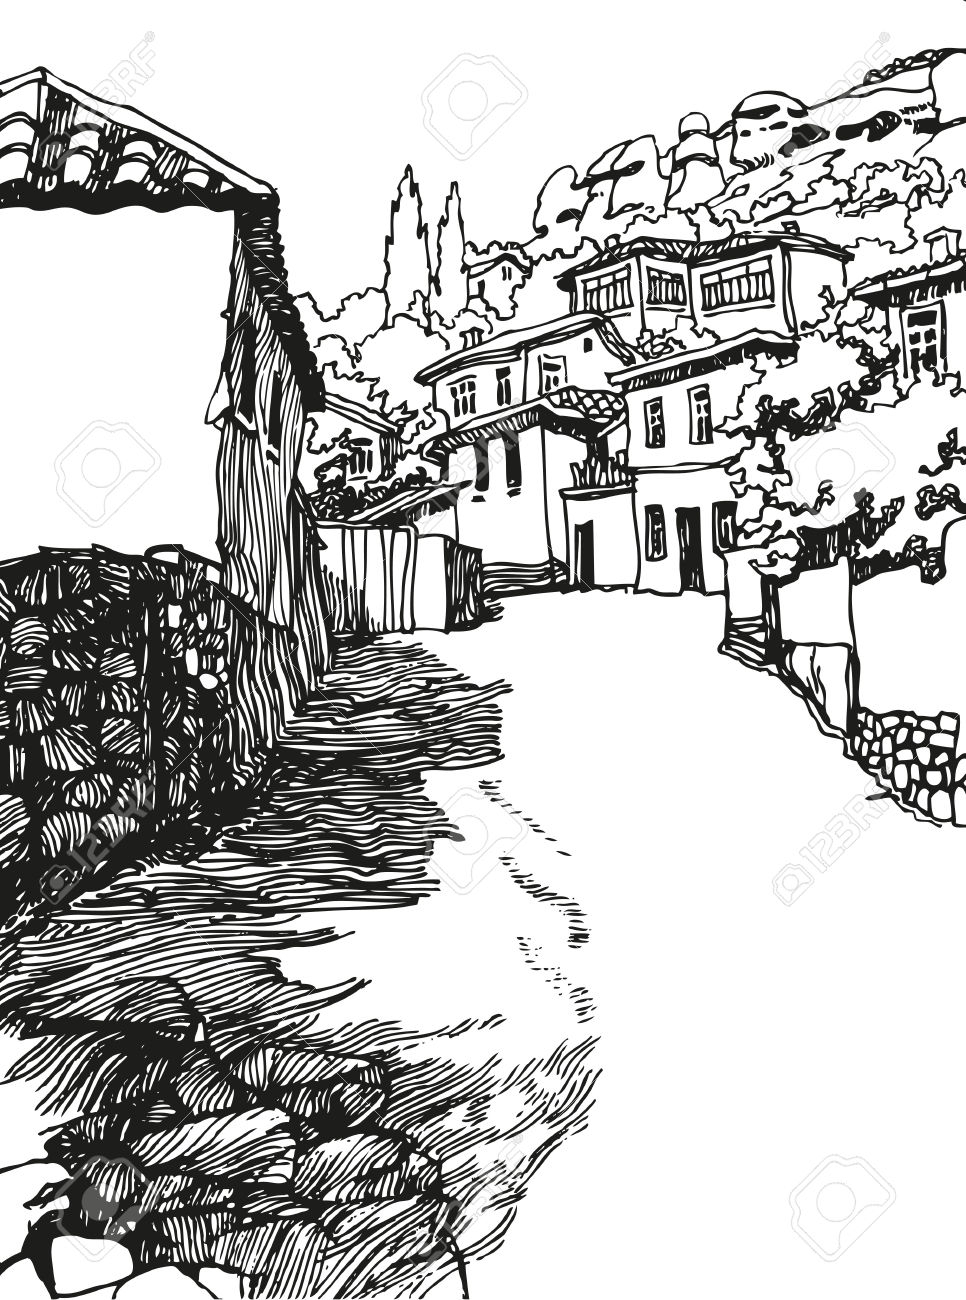 966x1300 Black White Landscape Drawings Illustration Of The Black